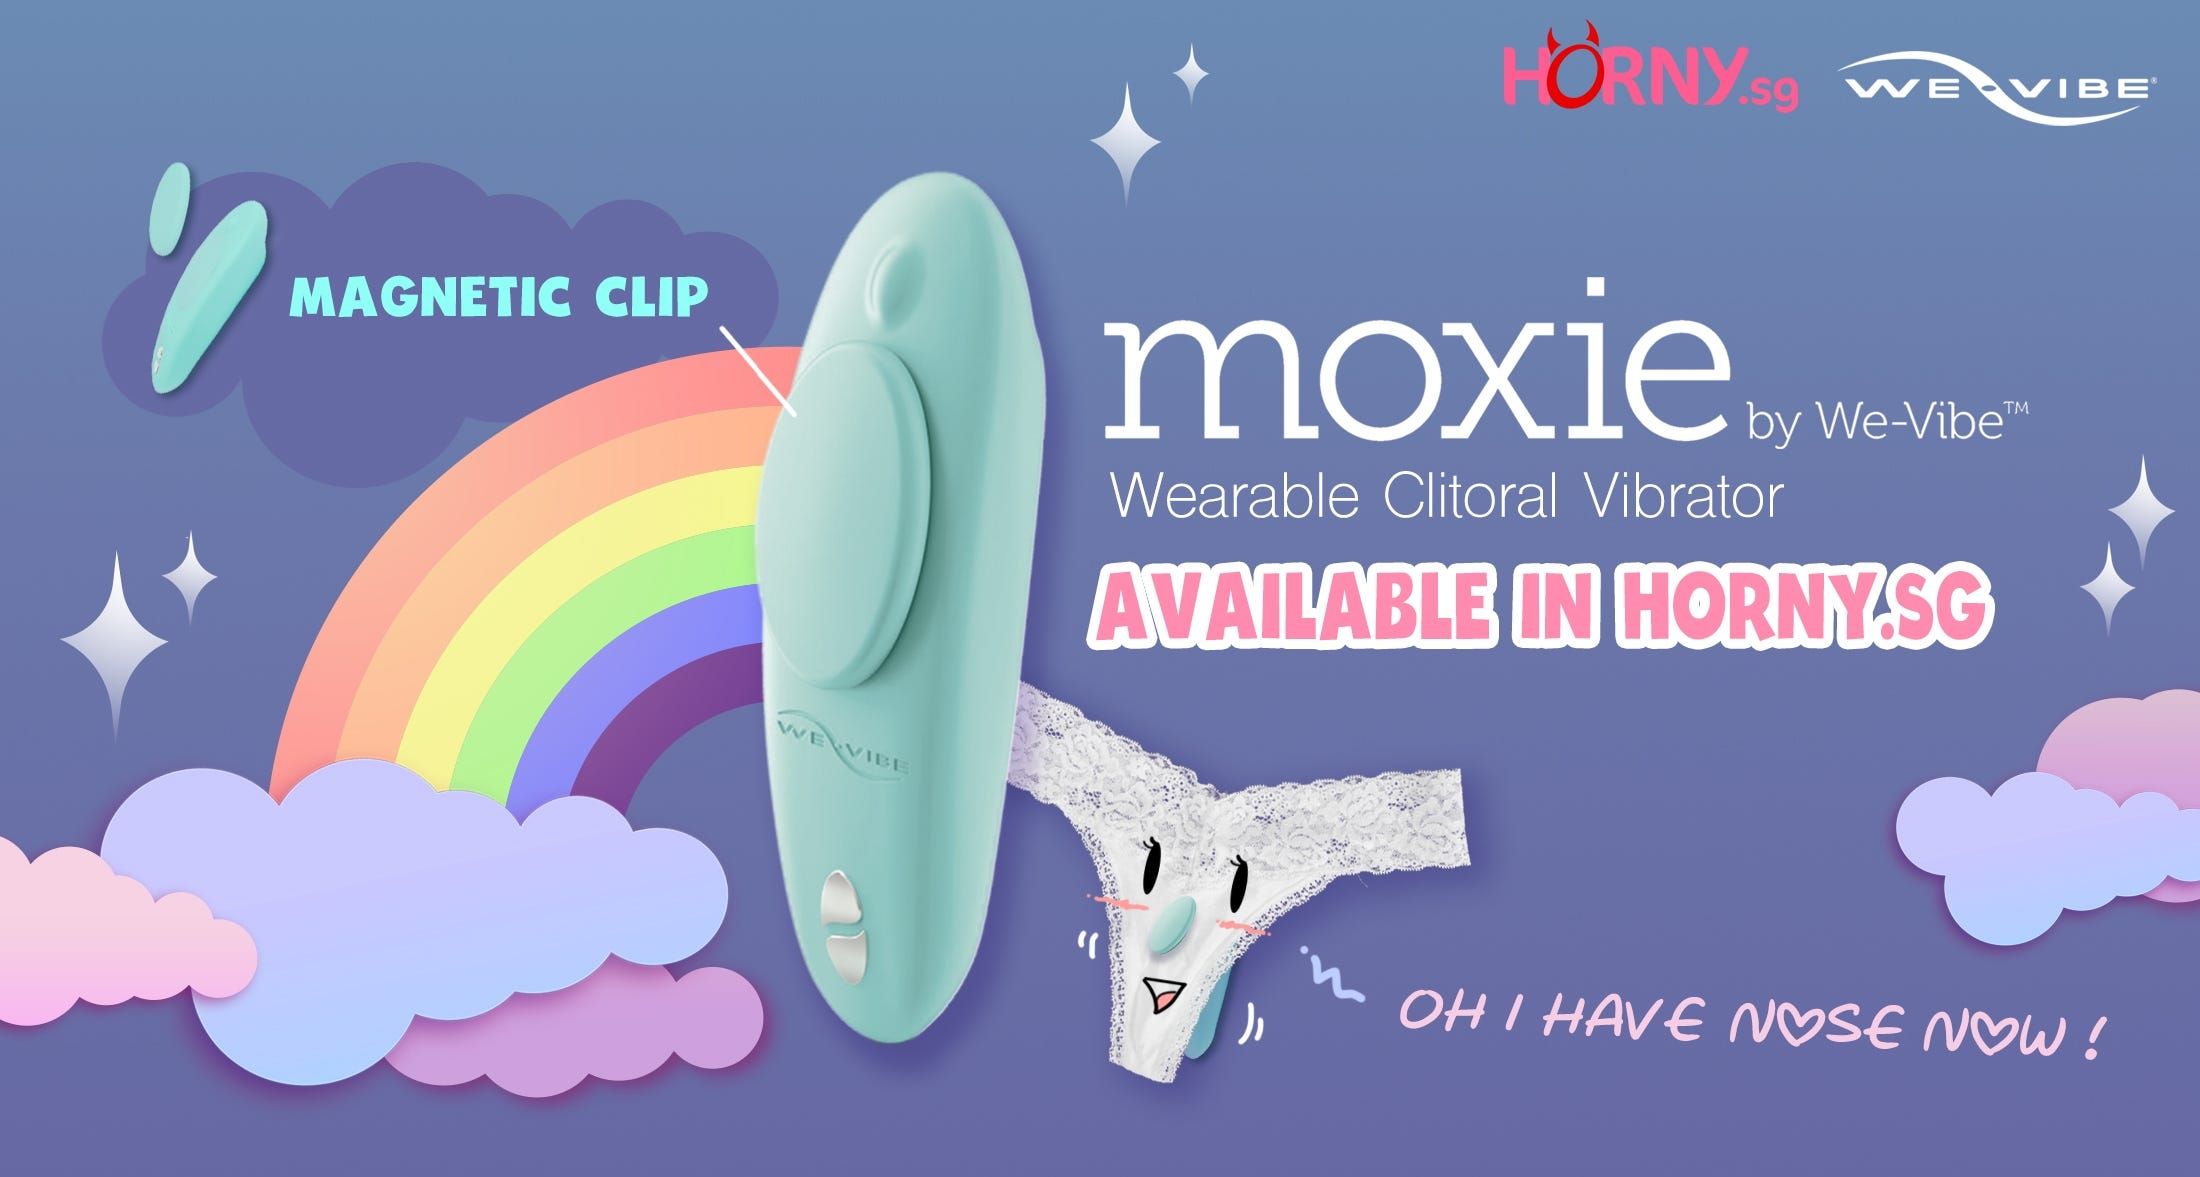 Wow We-vibe New Products !